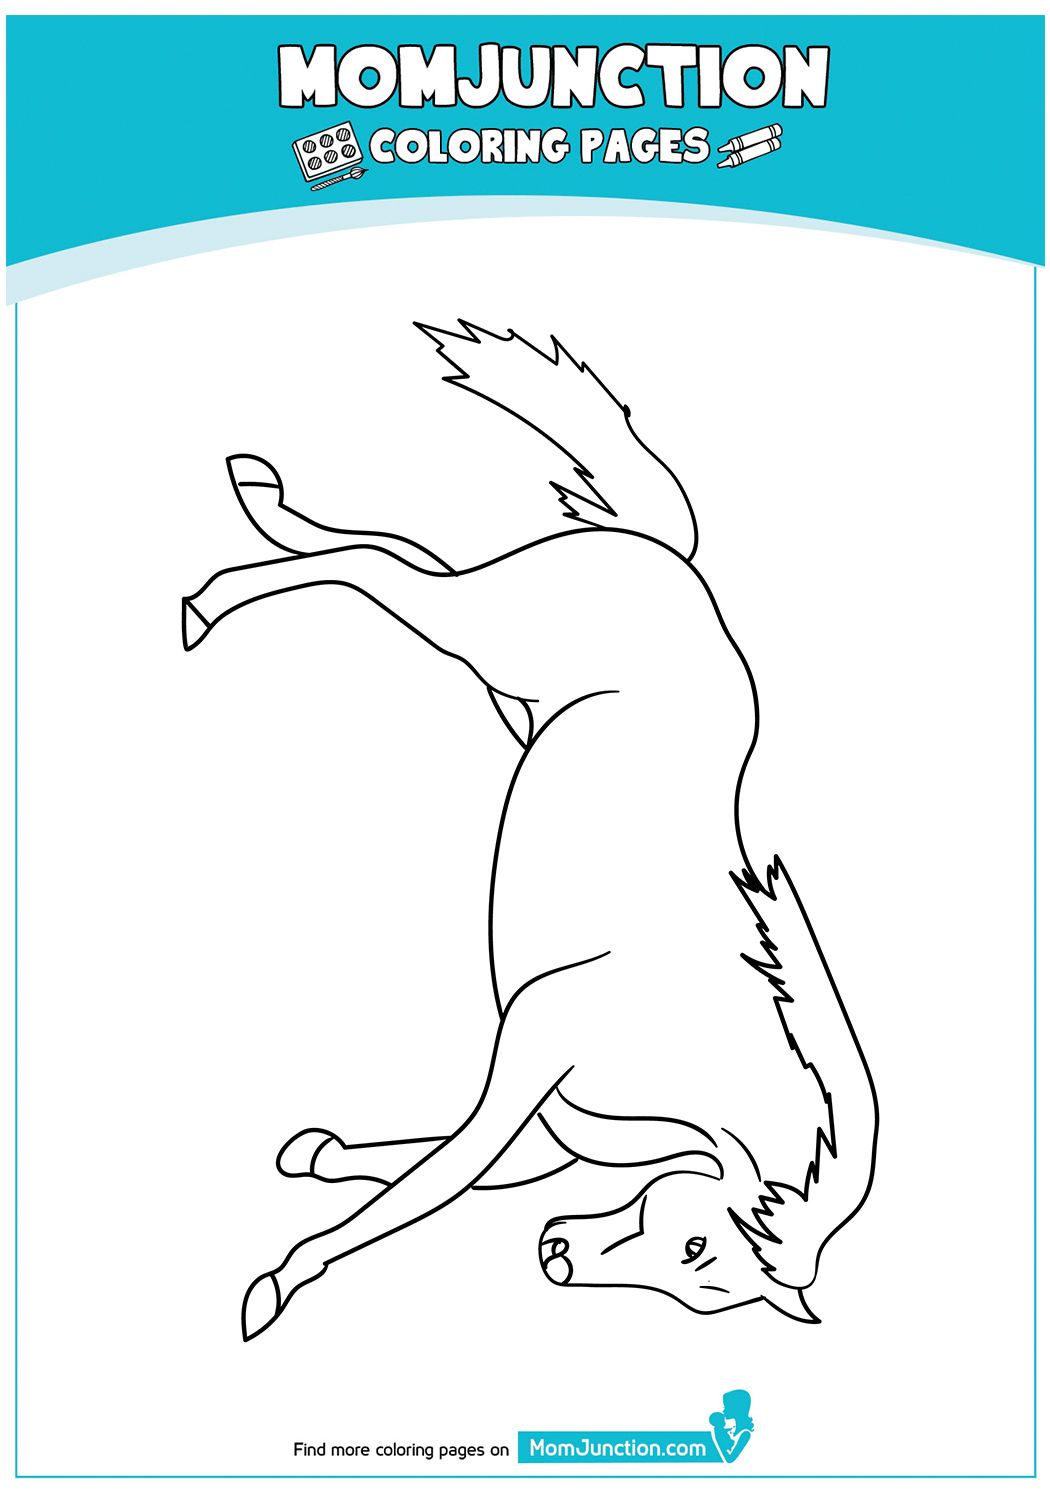 Quarter Horse 17 Horse Coloring Pages Coloring Pages Horse Coloring [ 1500 x 1050 Pixel ]